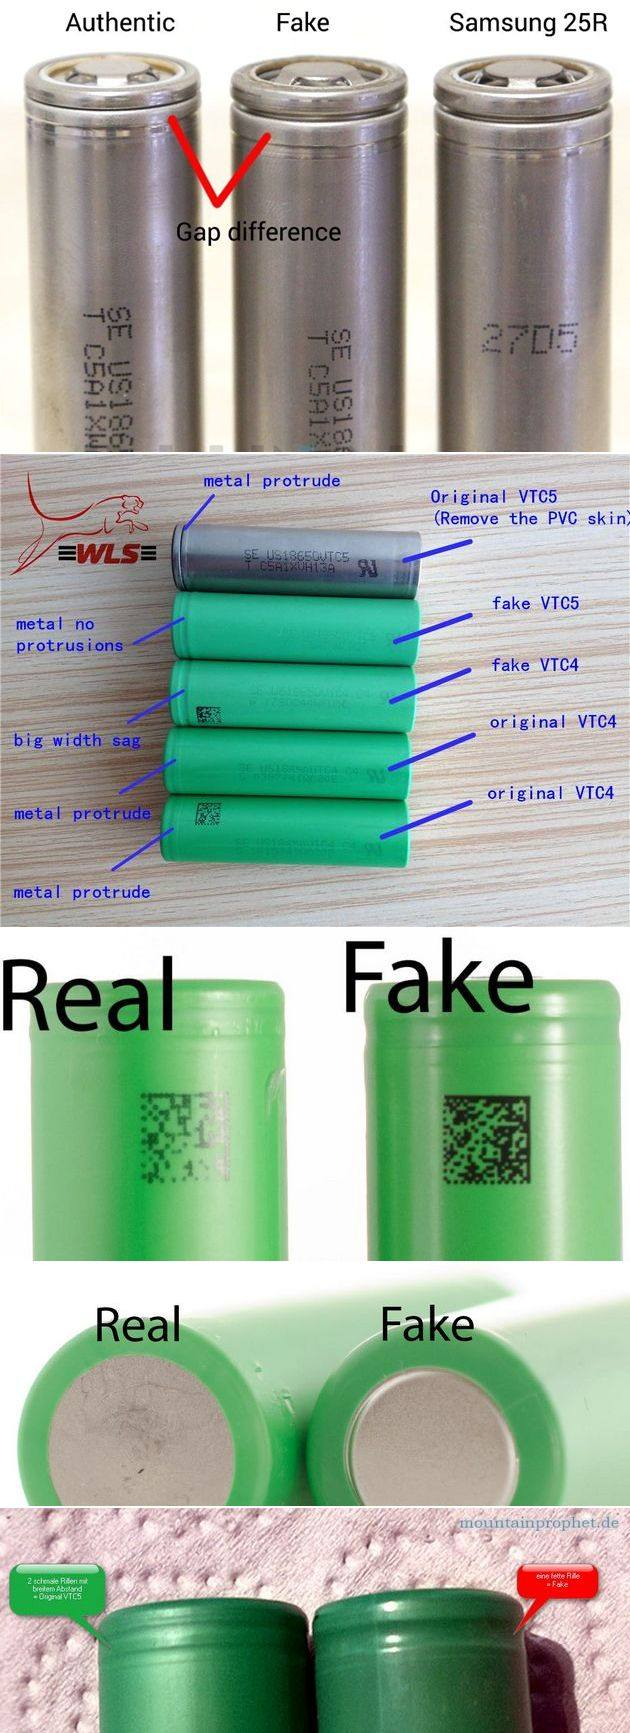 fake-li-ion-battery-fake-vtc-sony-battery-fakew